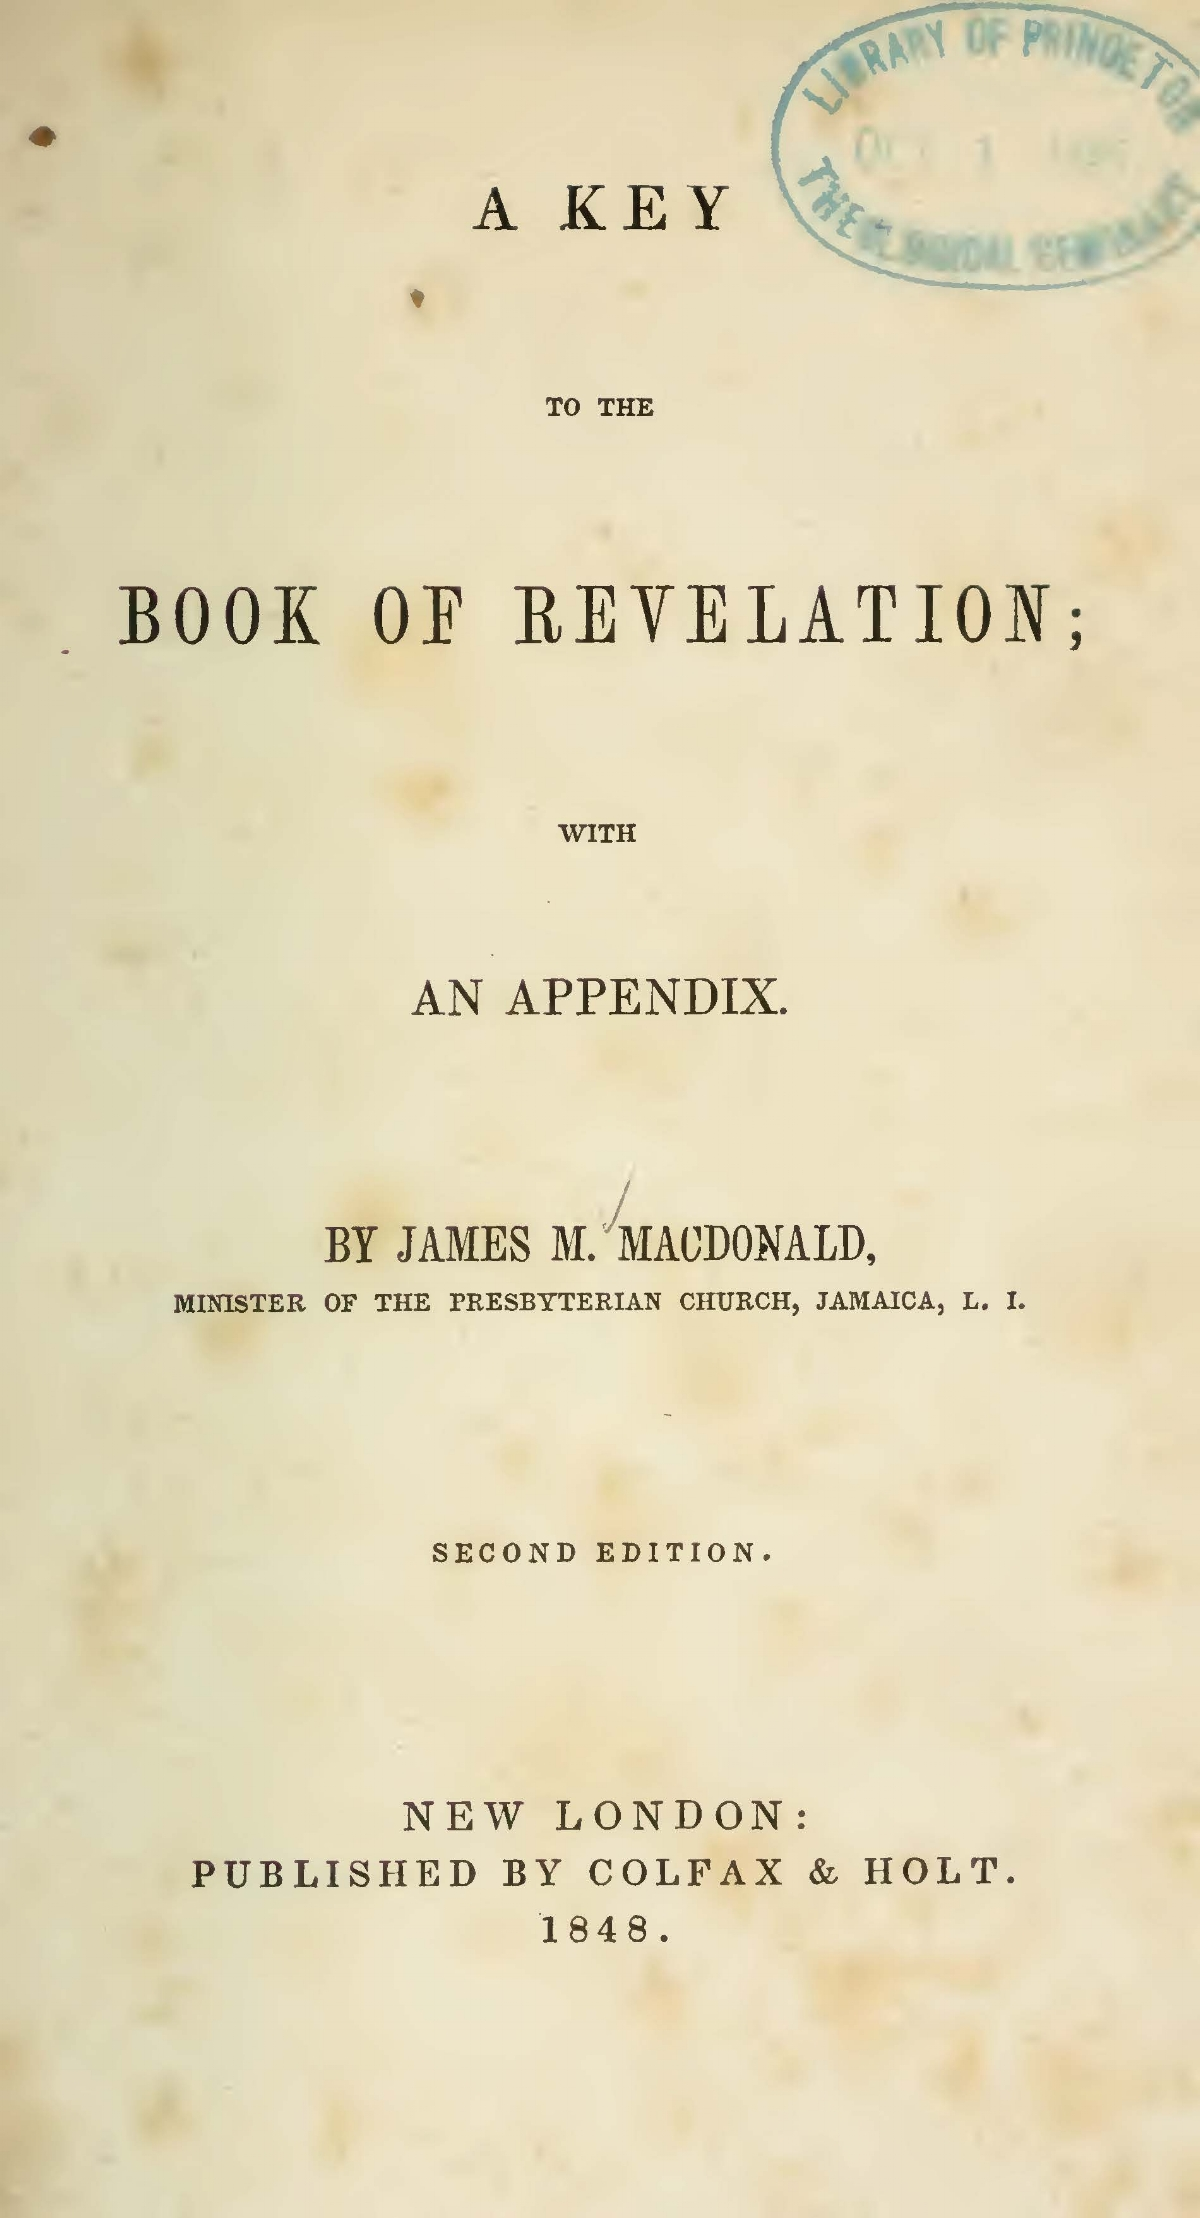 MacDonald, James Madison, A Key to the Book of Revelation Title Page.jpg